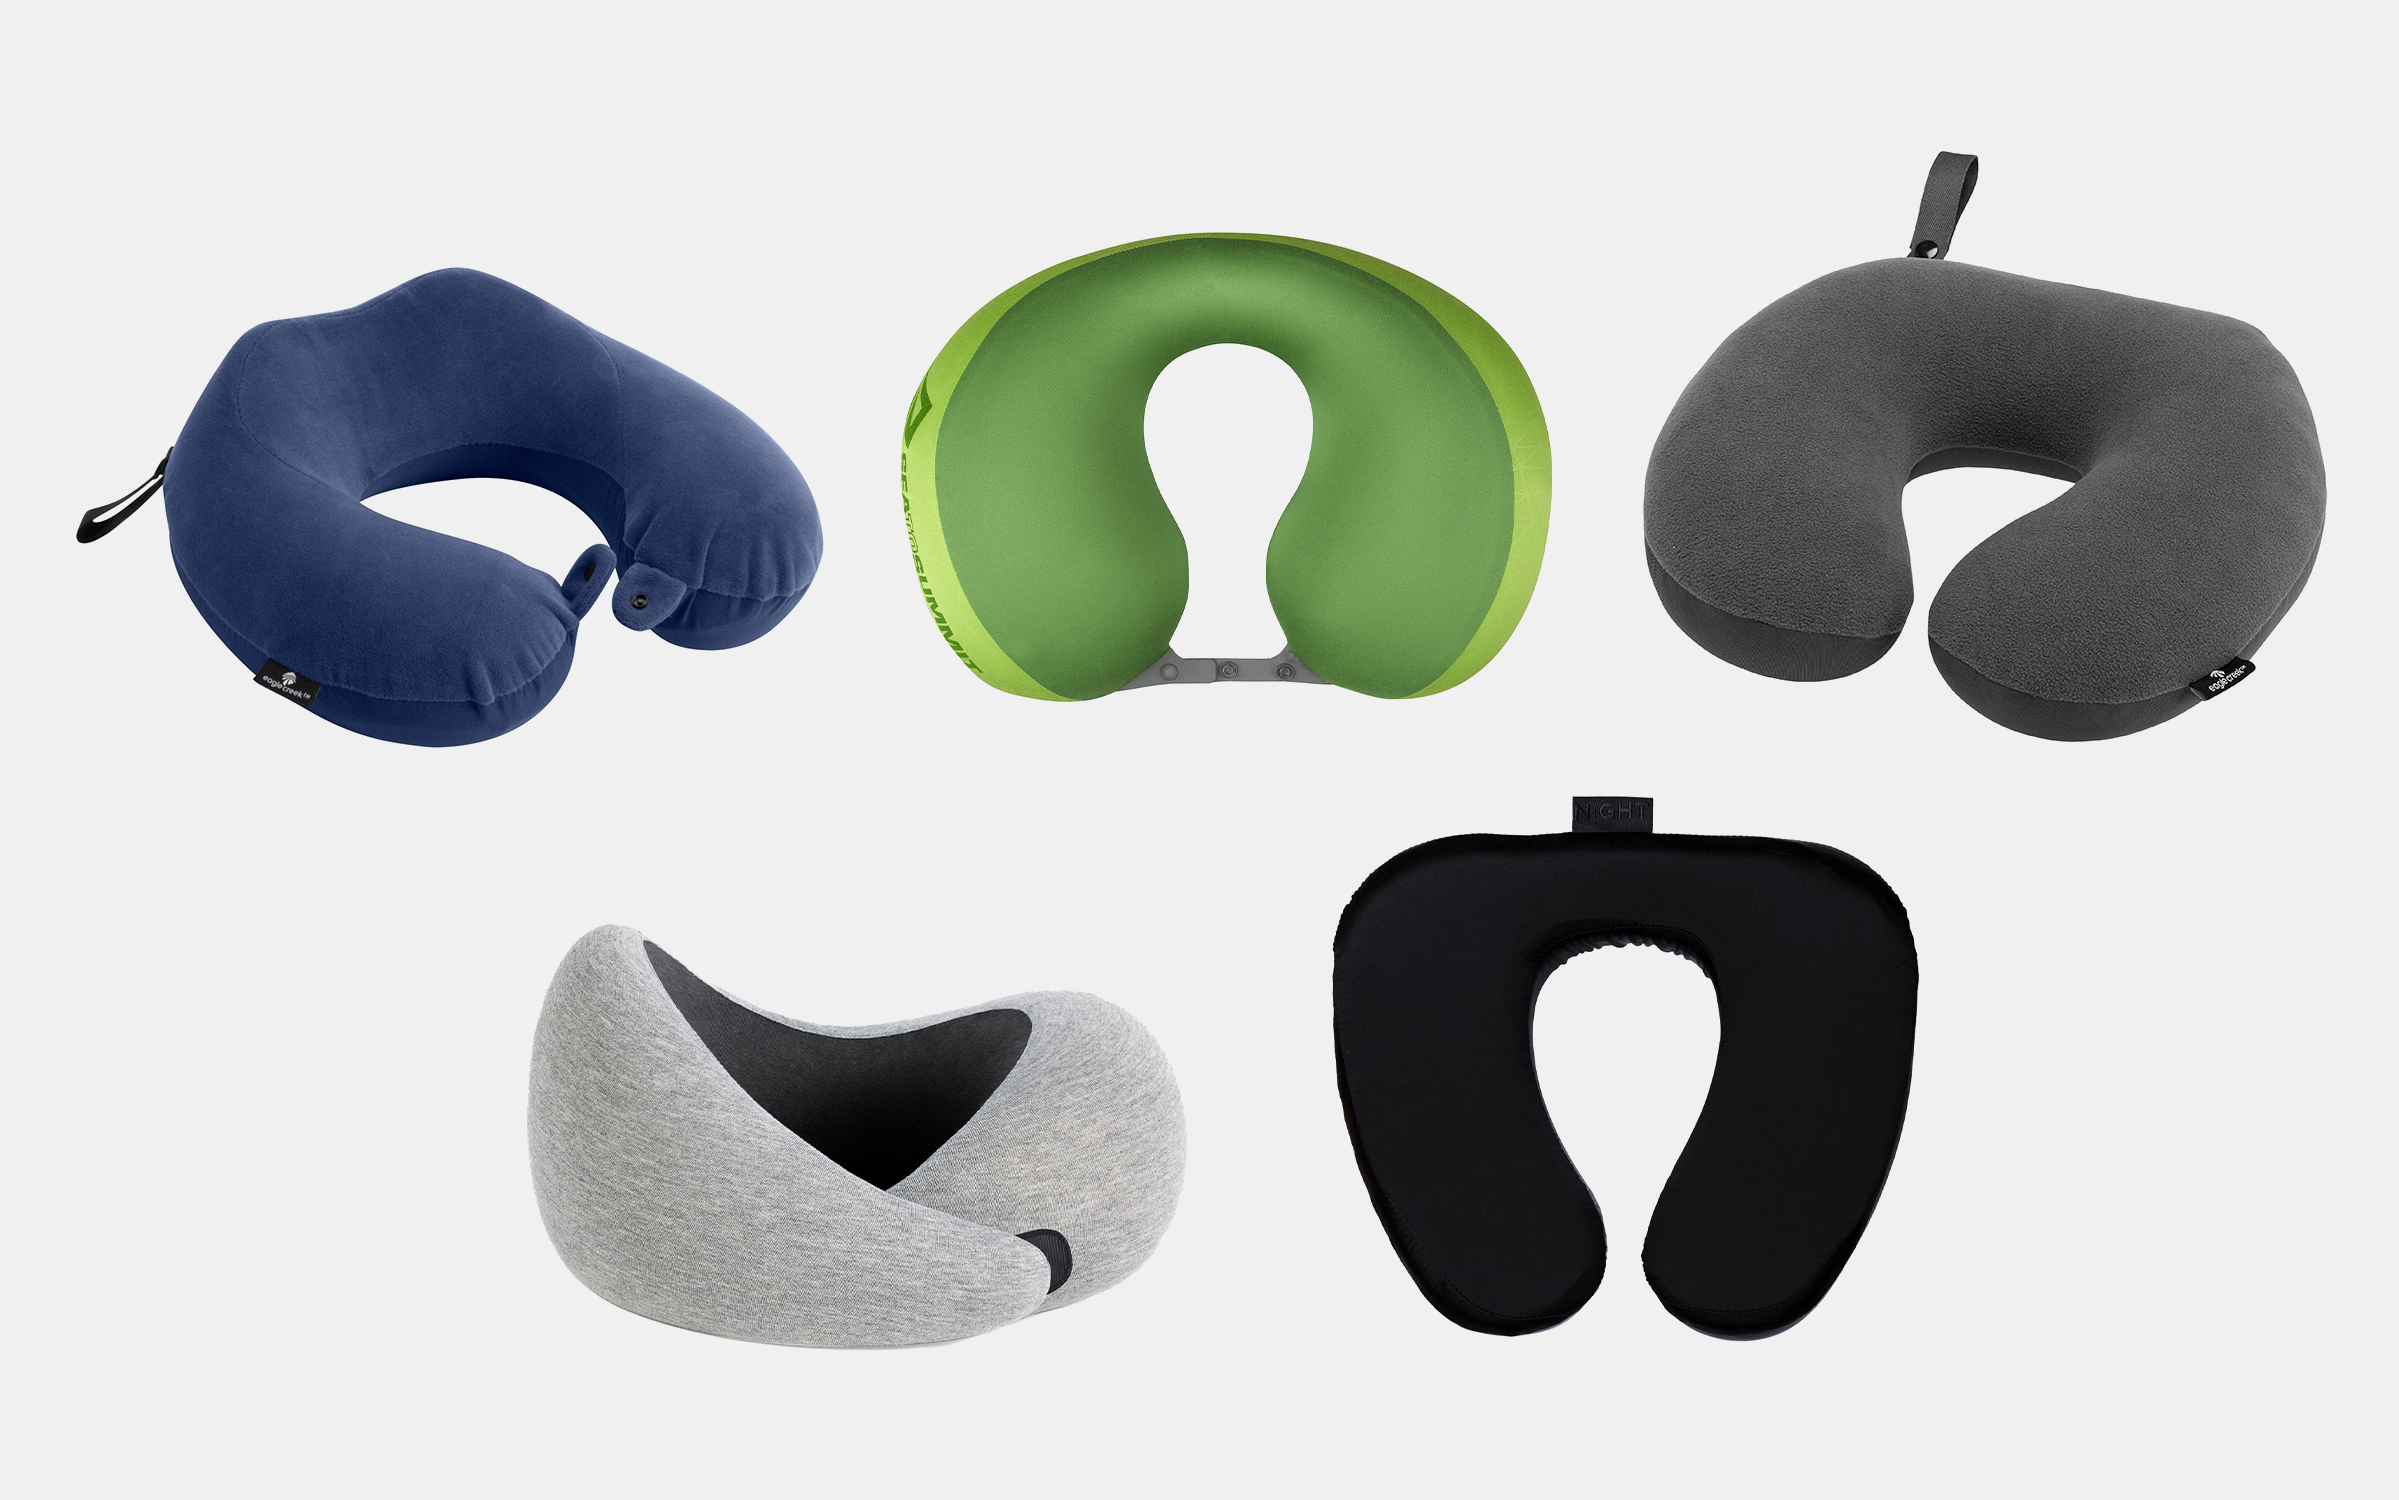 Best Travel Pillows For Frequent Flyers